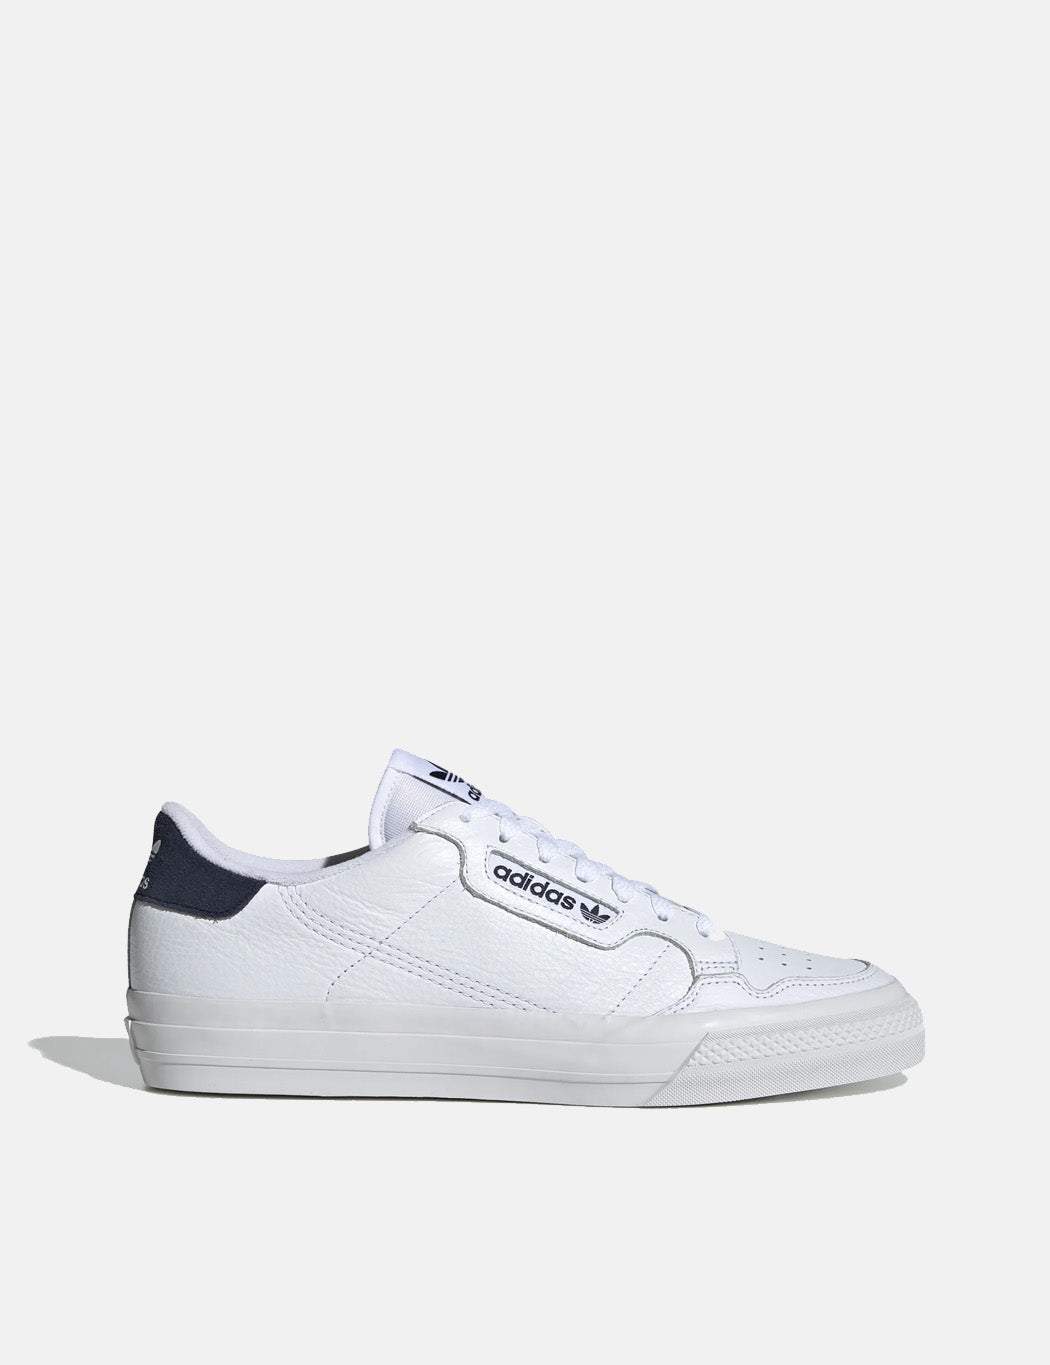 adidas Continental Vulc Shoes (EG4589) - White/Navy | URBAN EXCESS.